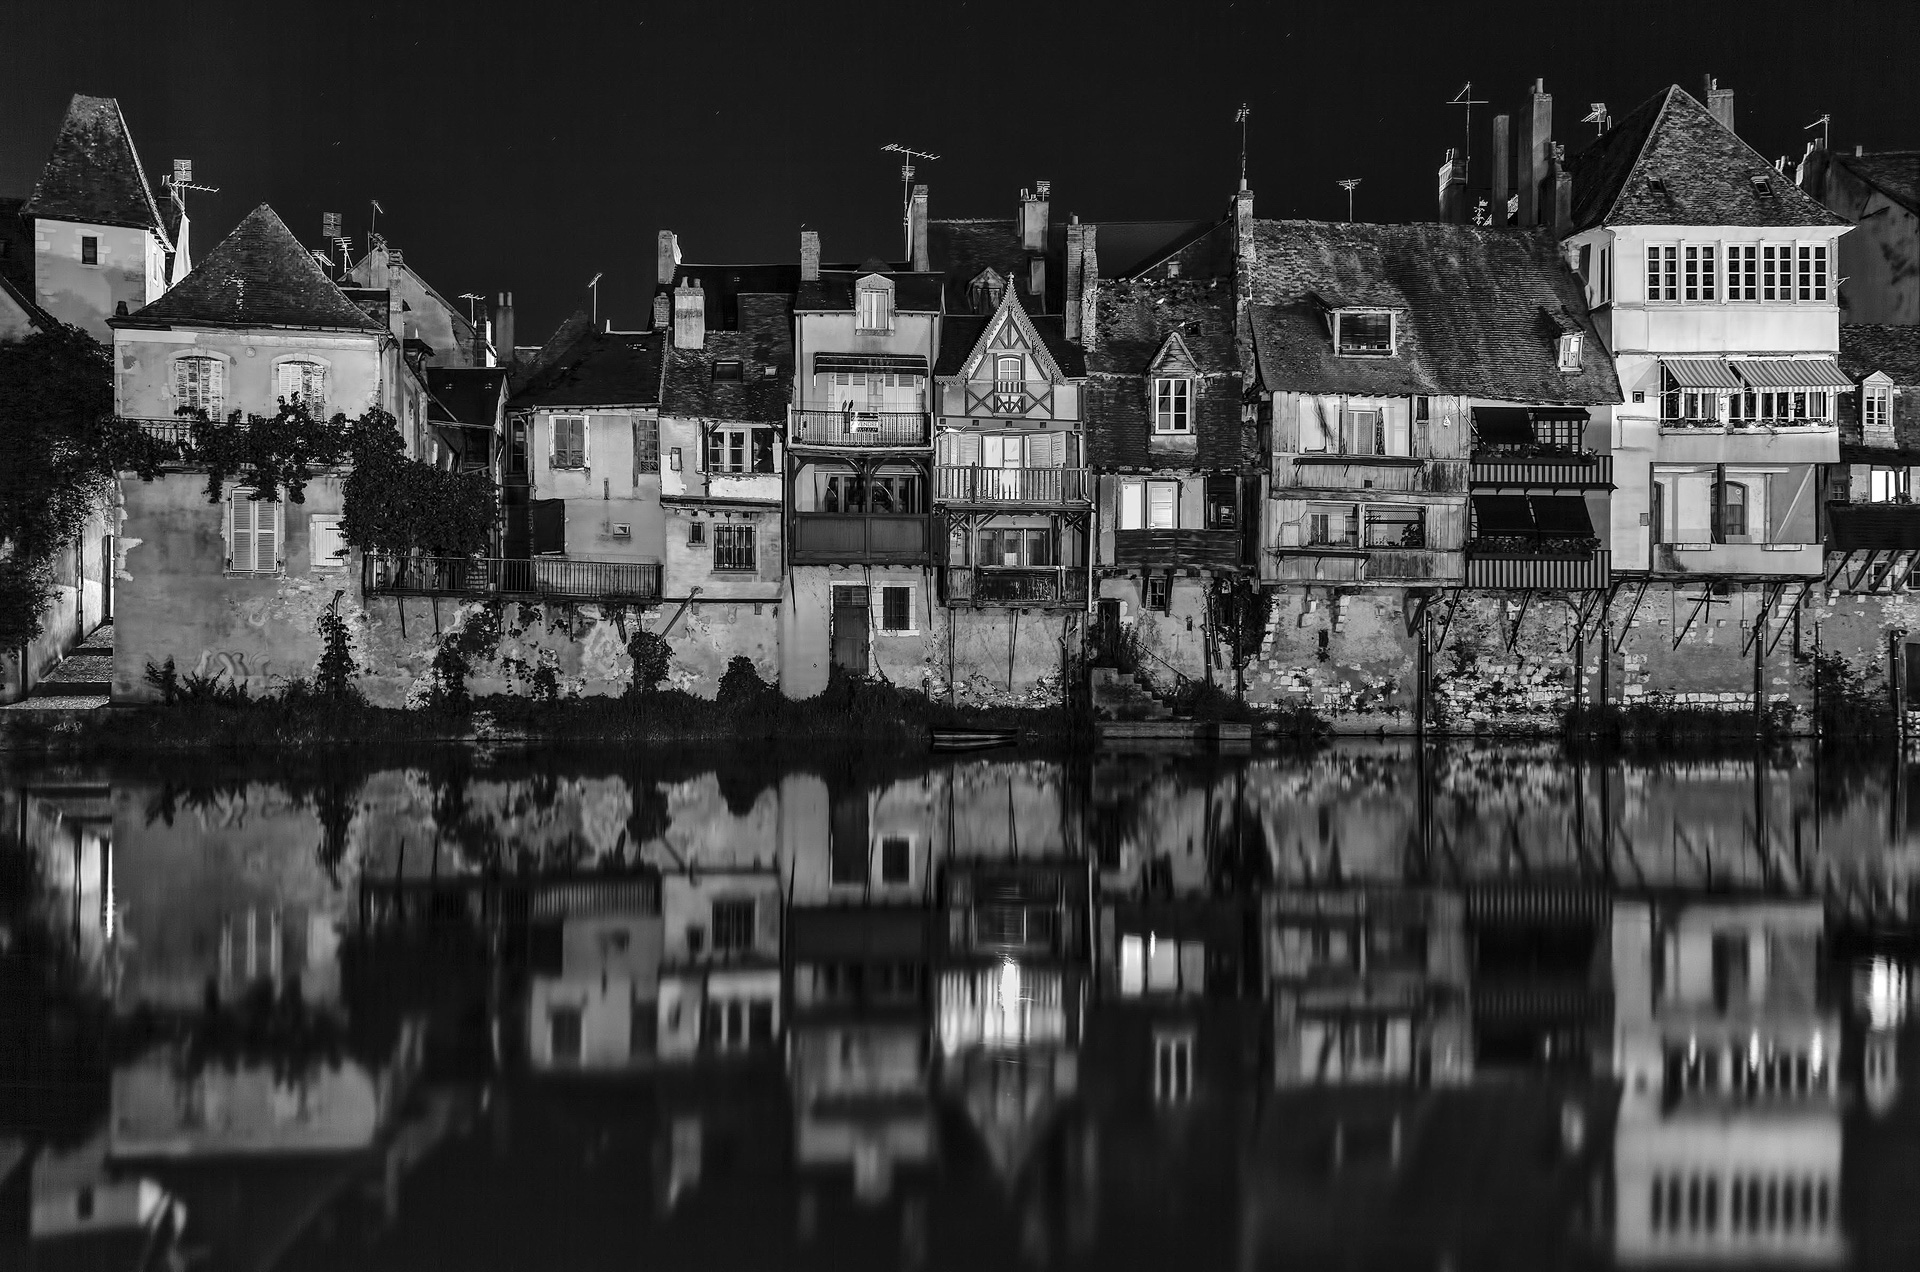 Agenton River Reflections - Monochrome Print (Open) - Name Withheld Per Request